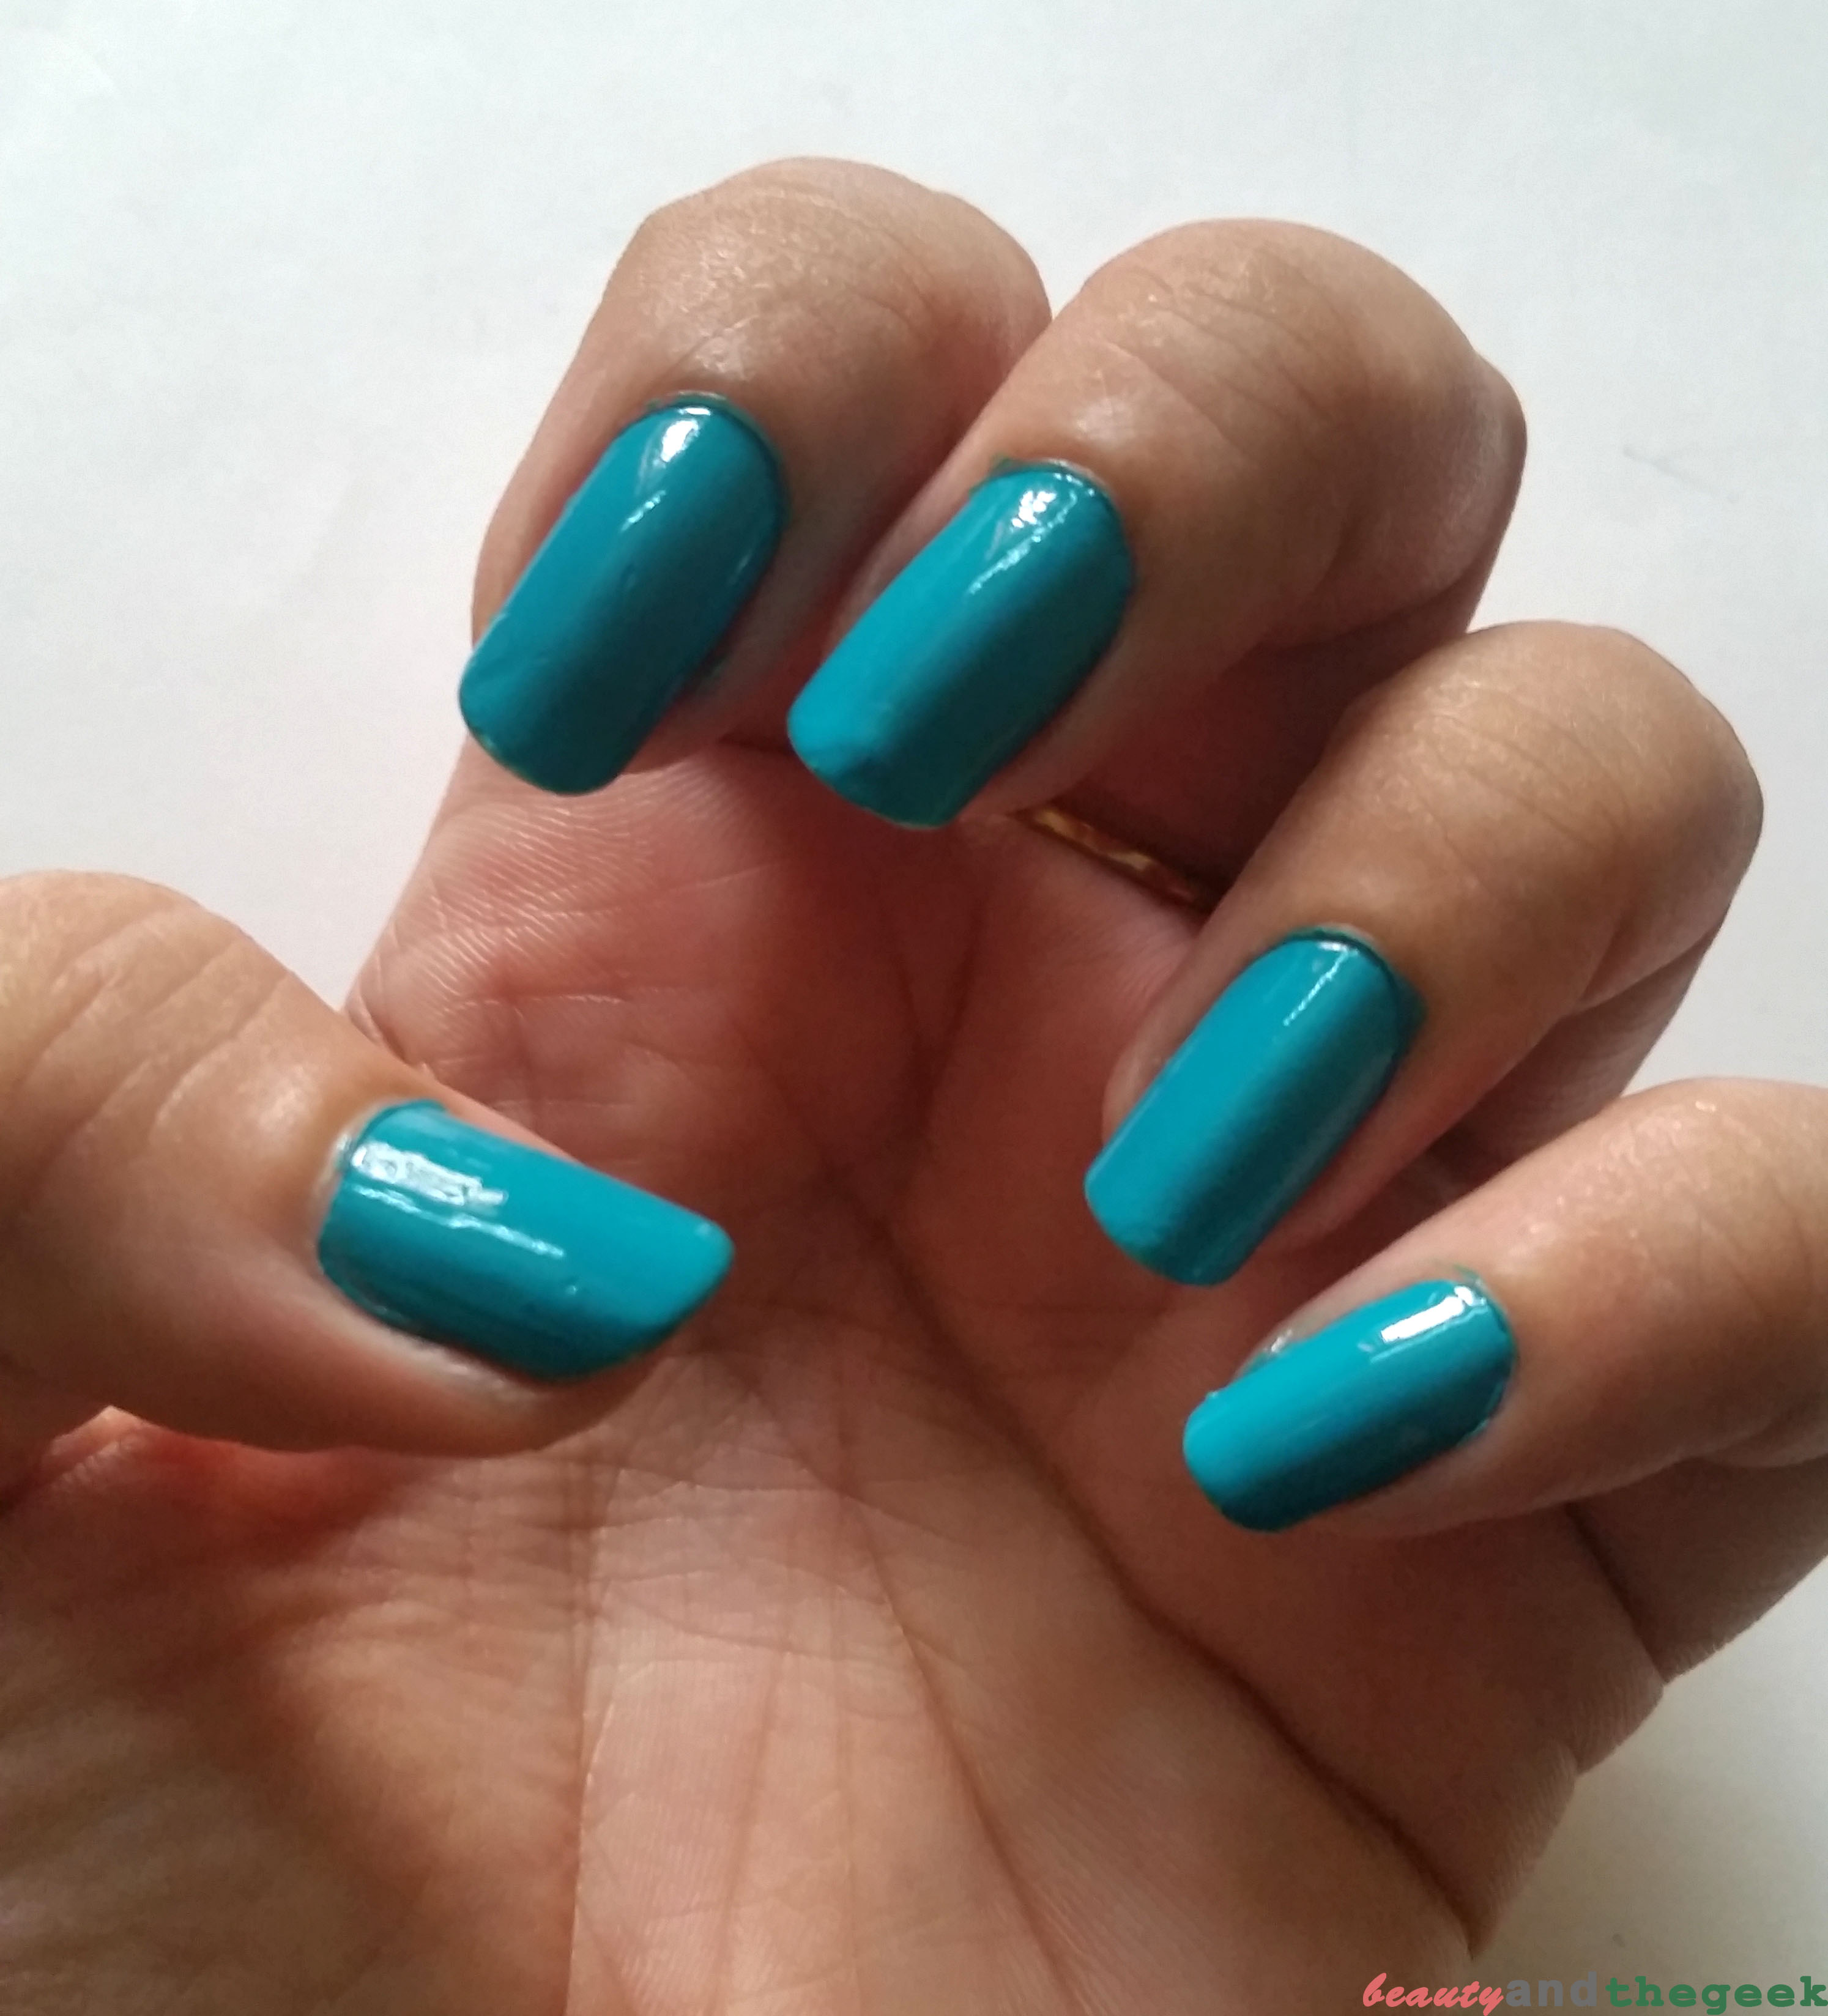 Bella Voste Premium Nail Enamel - Tropical Teal 34, Review and Swatch -